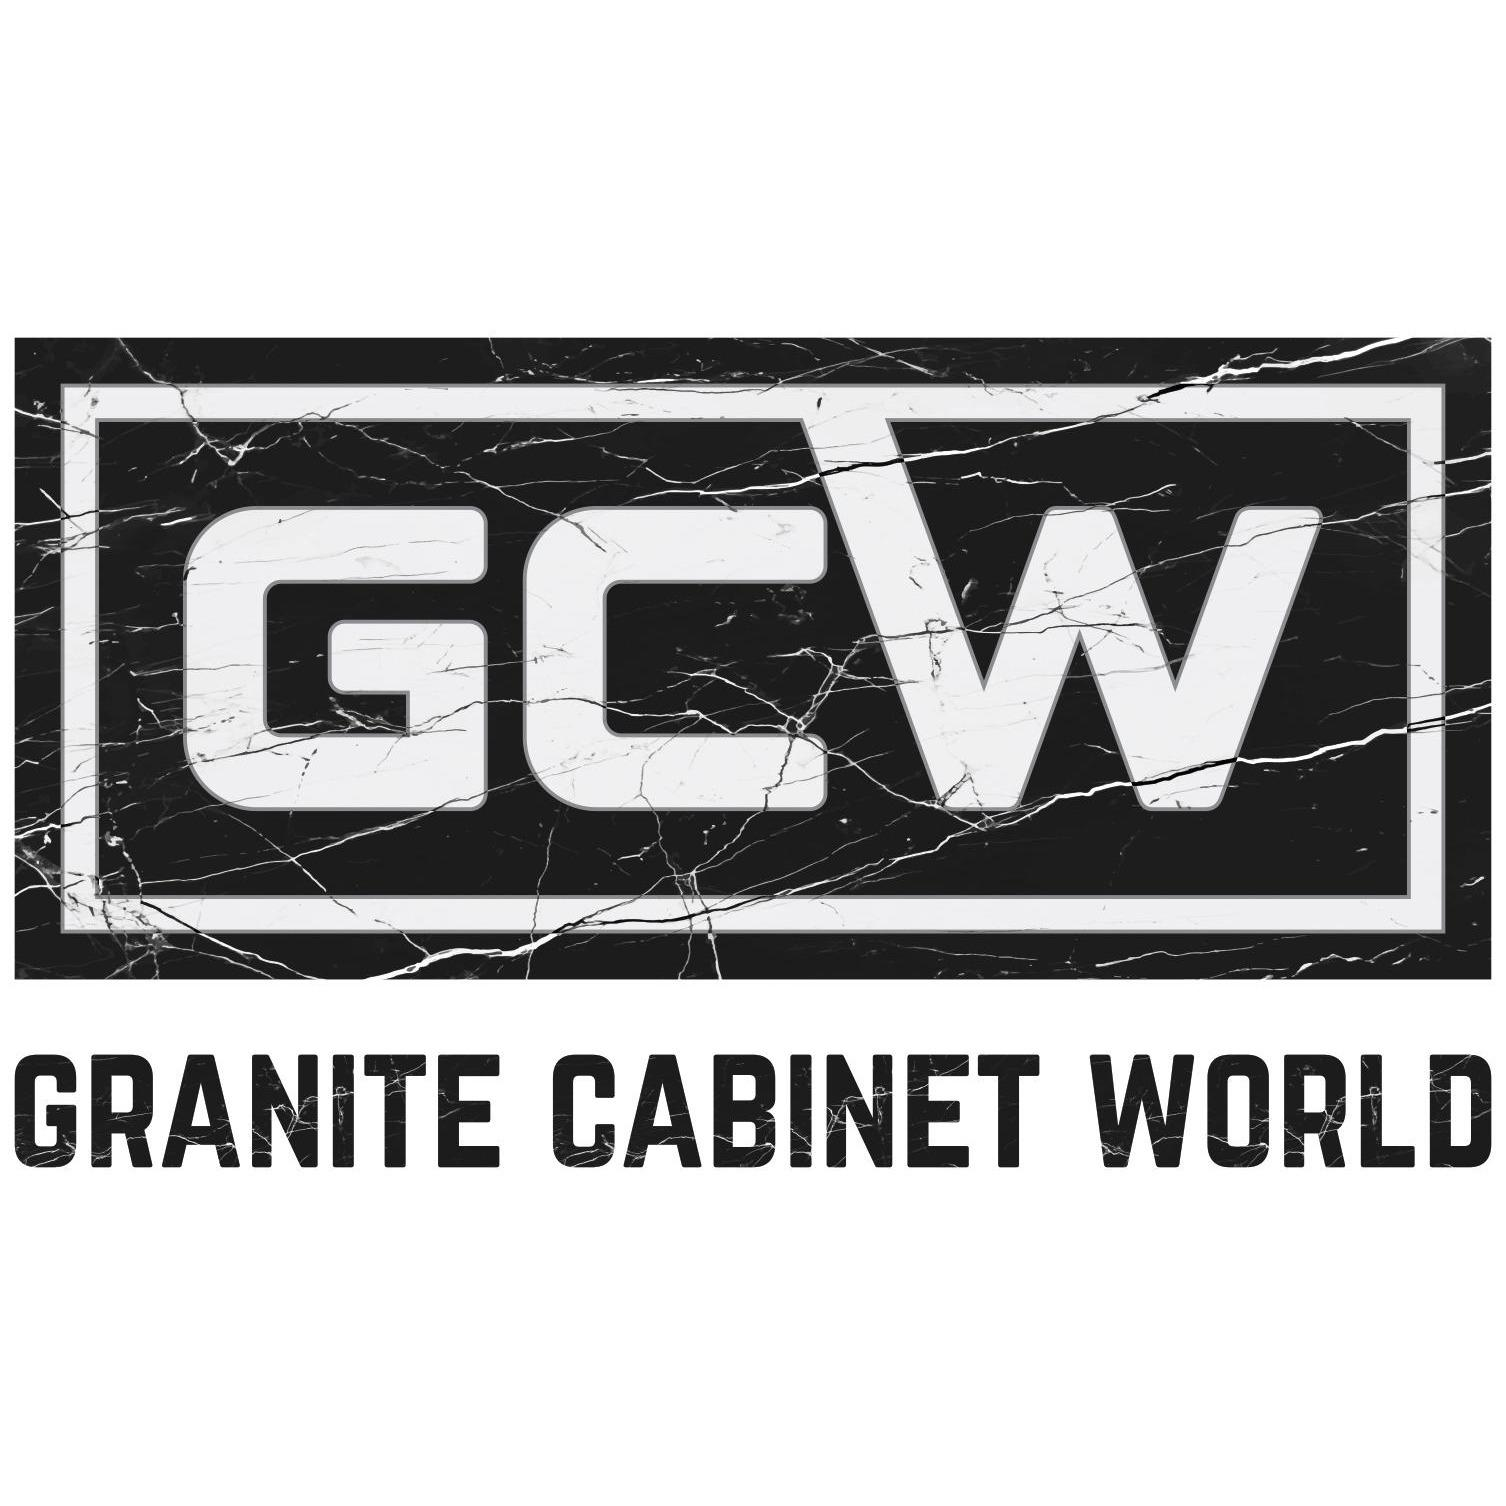 Granite Cabinet World